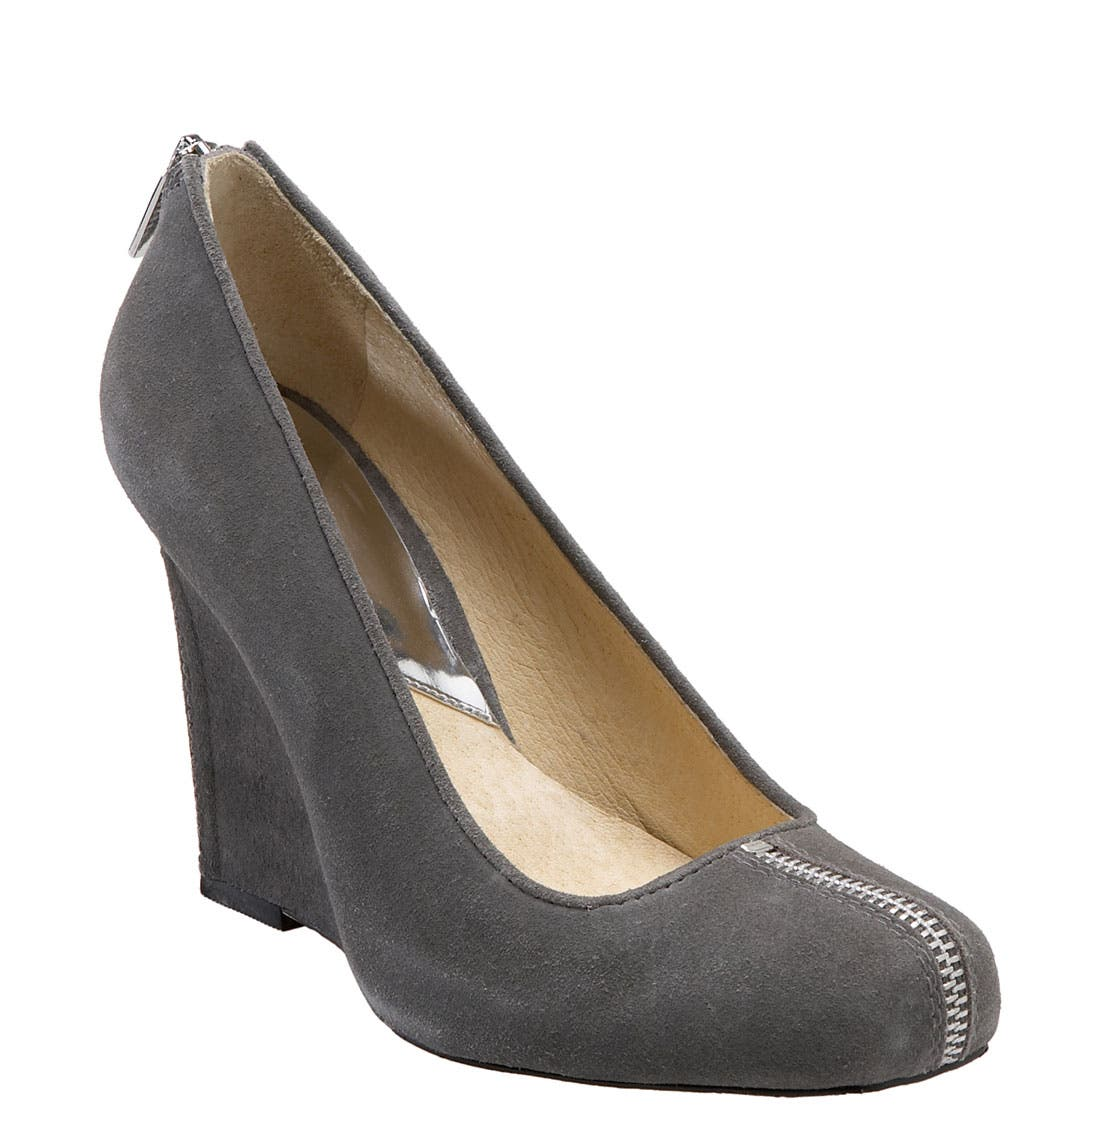 Main Image - MICHAEL Michael Kors 'Parker' Wedge Pump (Nordstrom Exclusive)